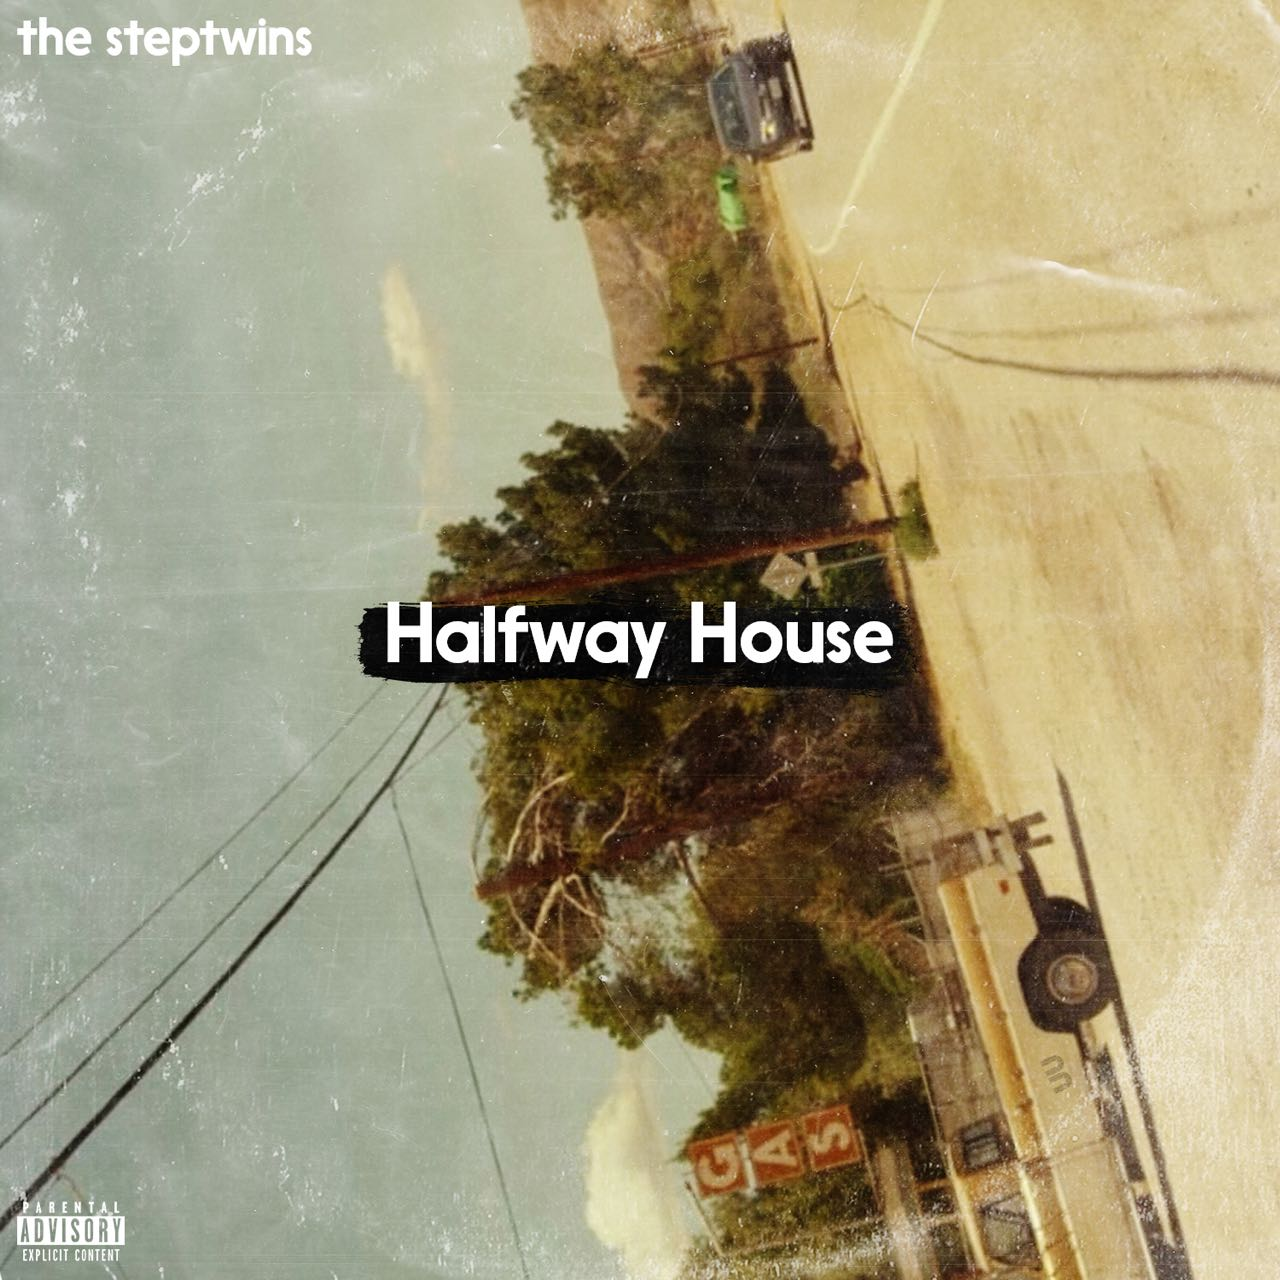 Listen to The Steptwins' 'Halfway House' EP IMG 20171014 WA0000